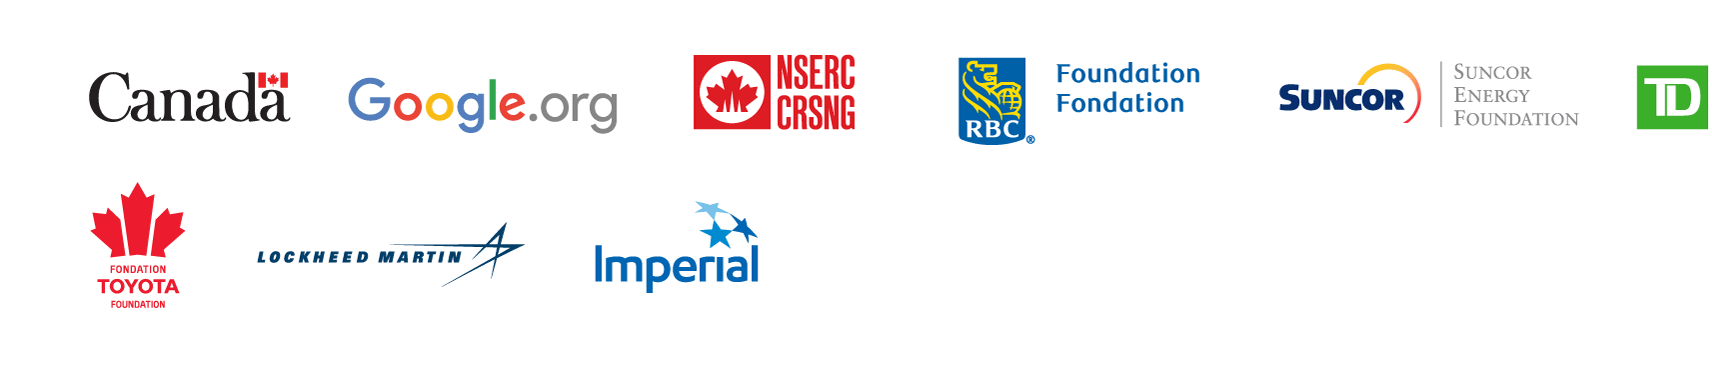 Logo of the Government of Canada, Google, NSERG, RBC Foundation, Suncor Energy Foundation, TD, Toyota, Lockneed Martin and Imperial